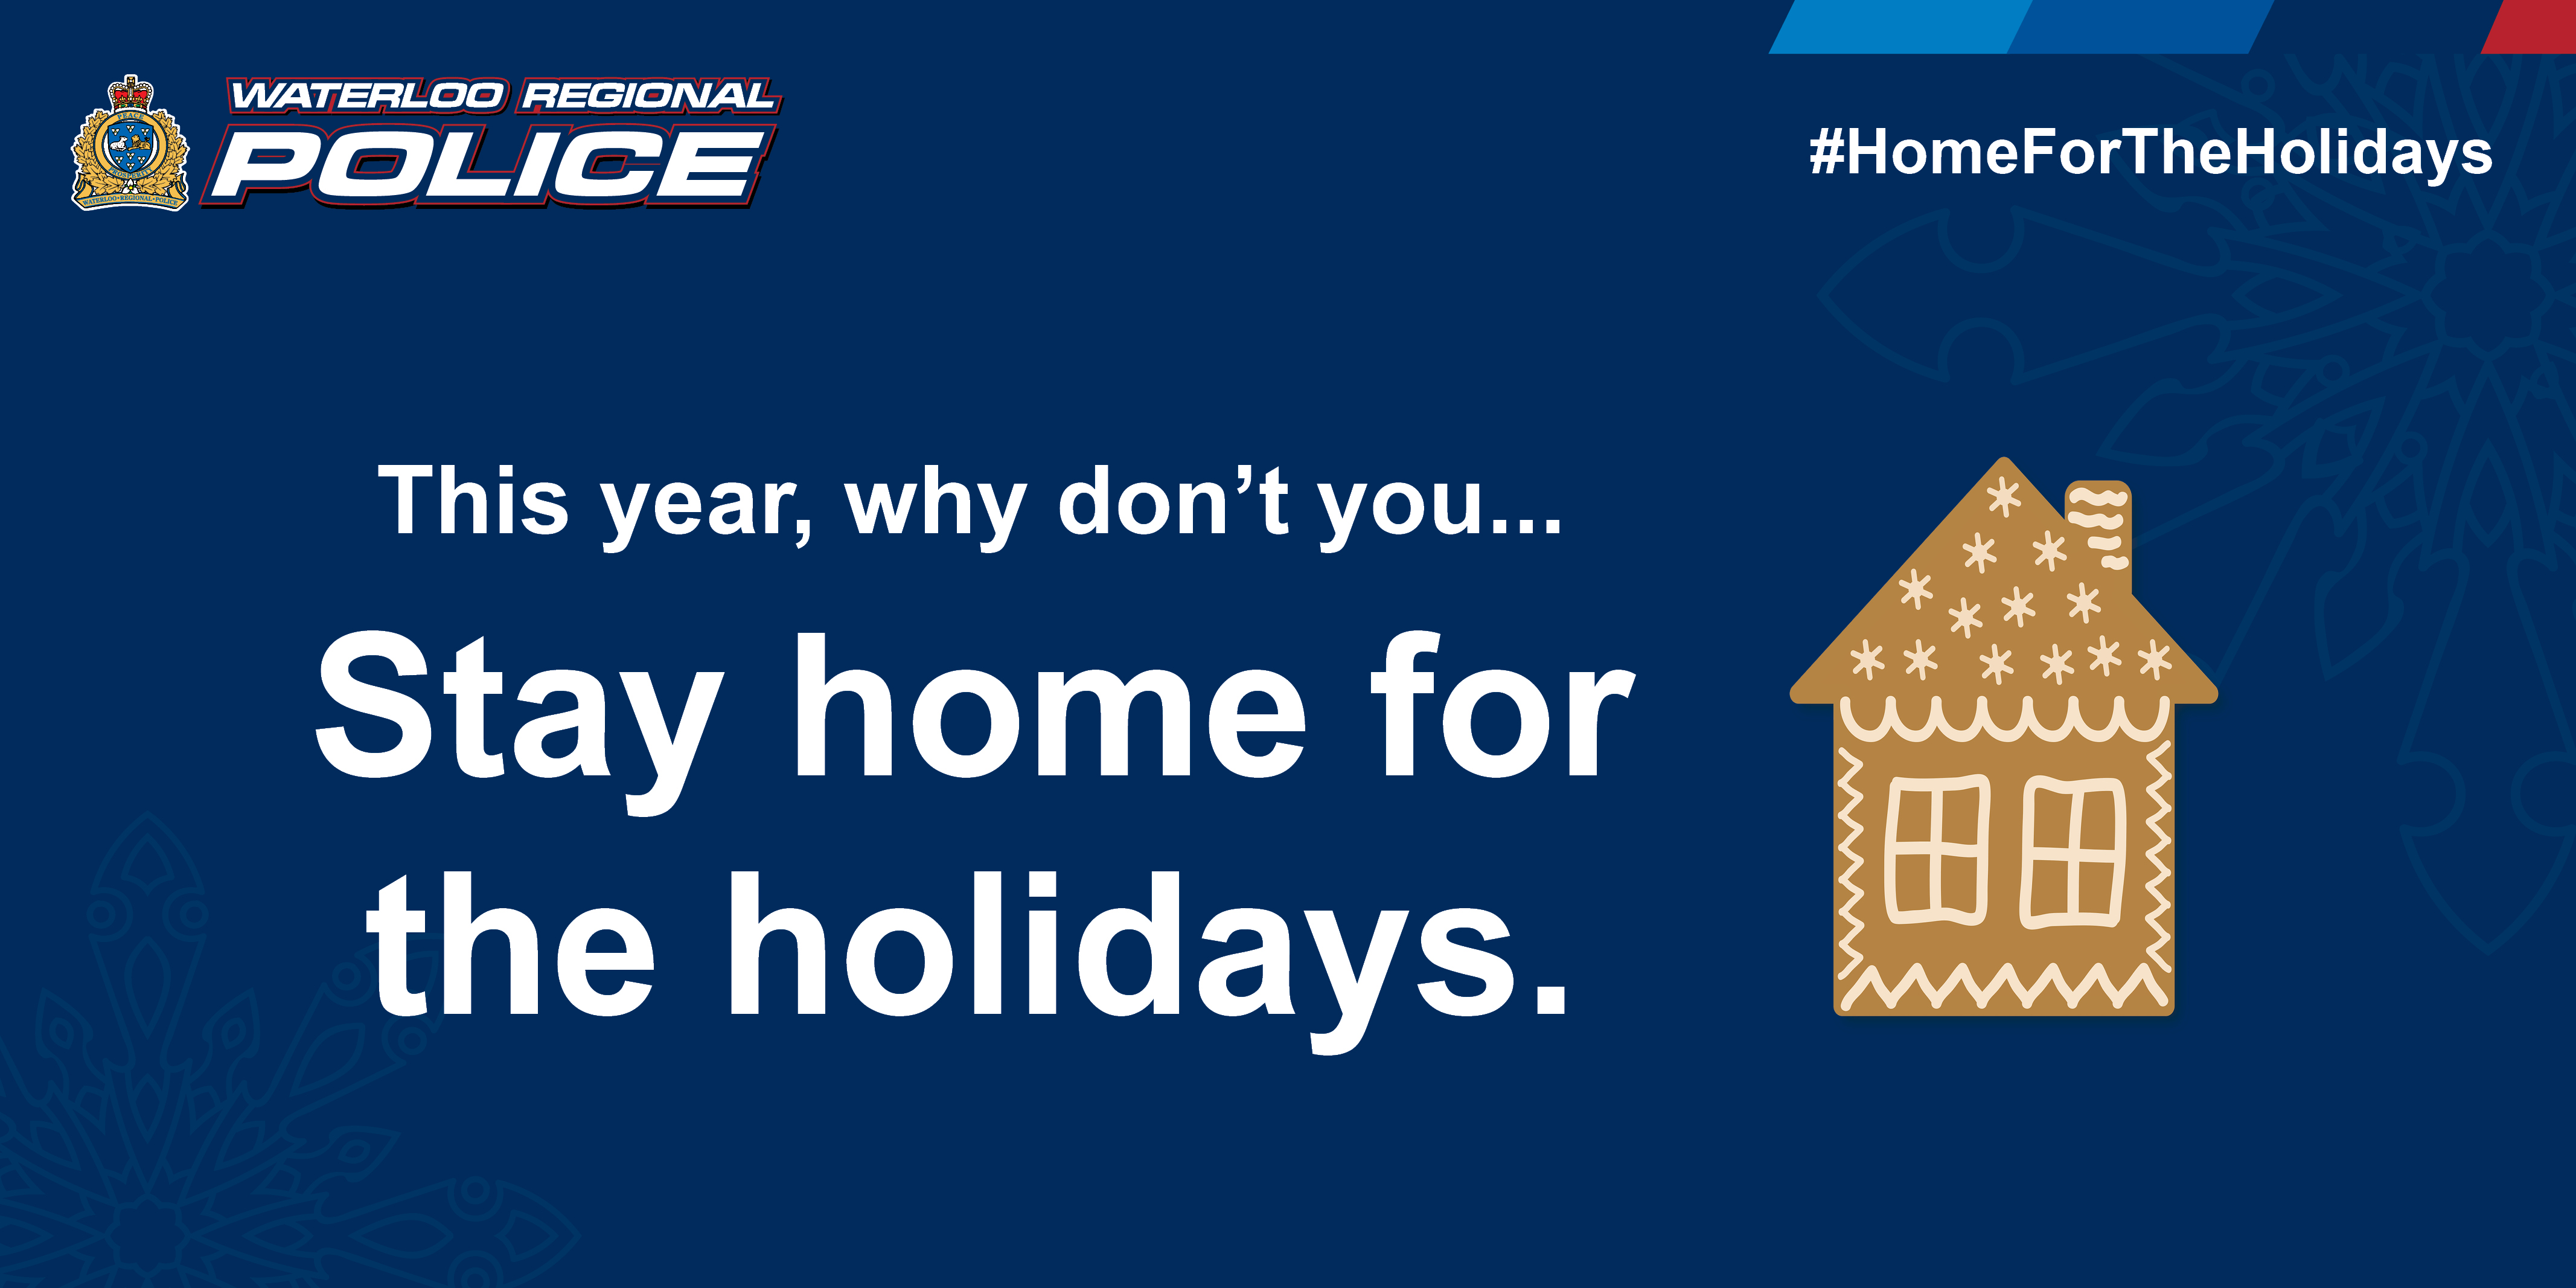 This year, why don't you stay home for the holidays